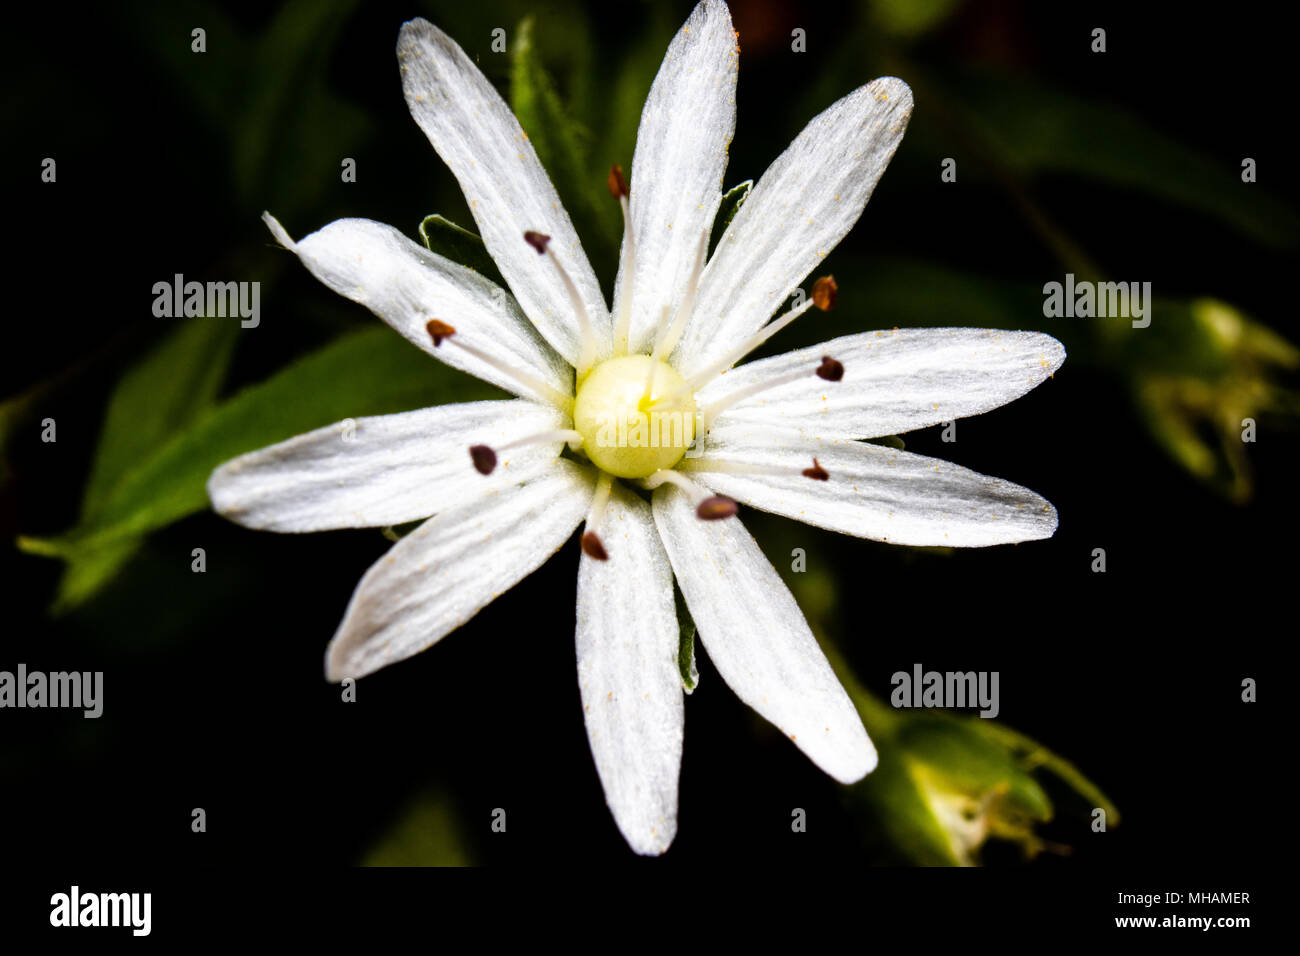 A spring wildflower is seen in this macro image taken in Central Appalachia, United States. Stock Photo